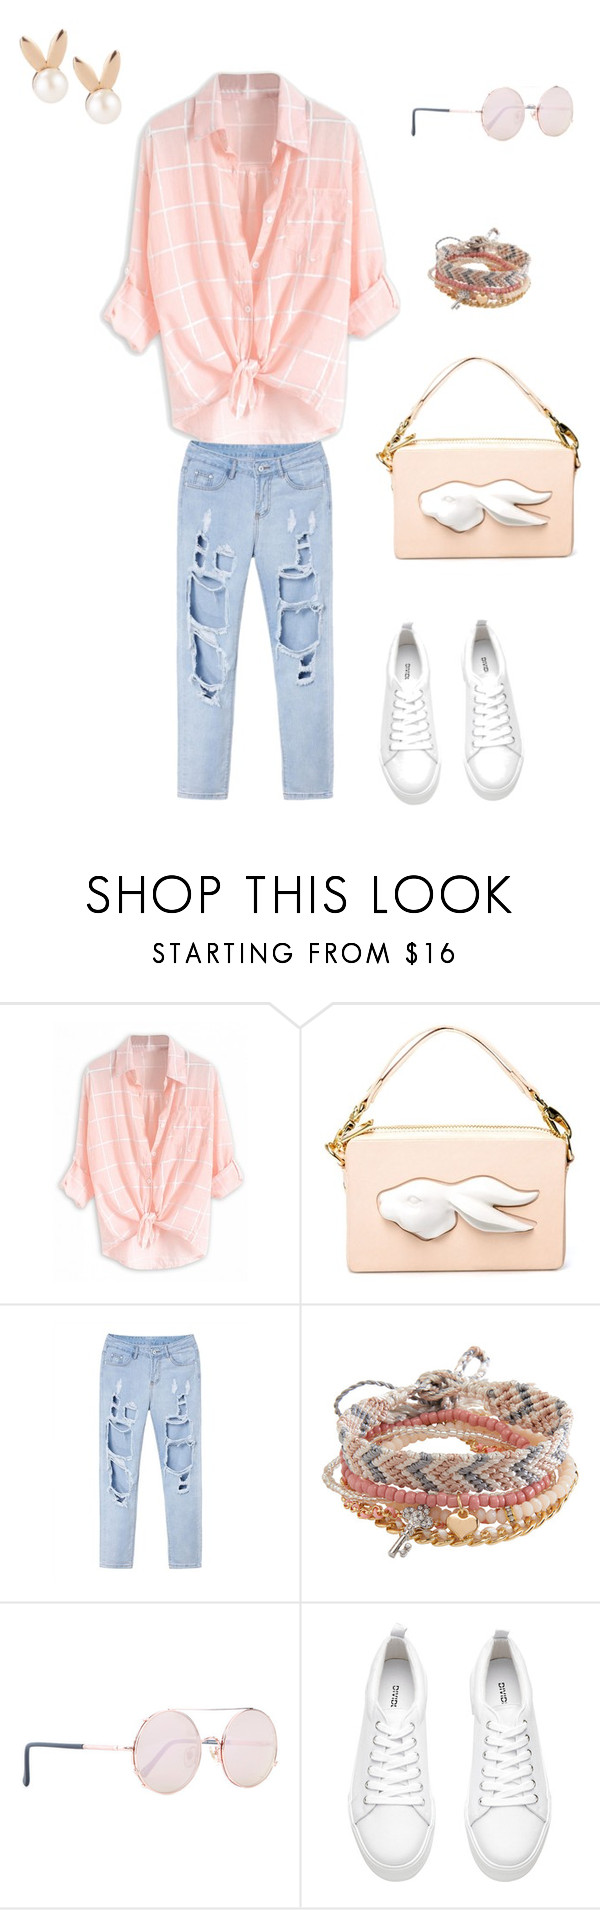 """""""White Sneakers"""" by melisastephens ❤ liked on Polyvore featuring Andres Gallardo, Aéropostale, Sunday Somewhere, Aamaya by priyanka and whitesneakers"""